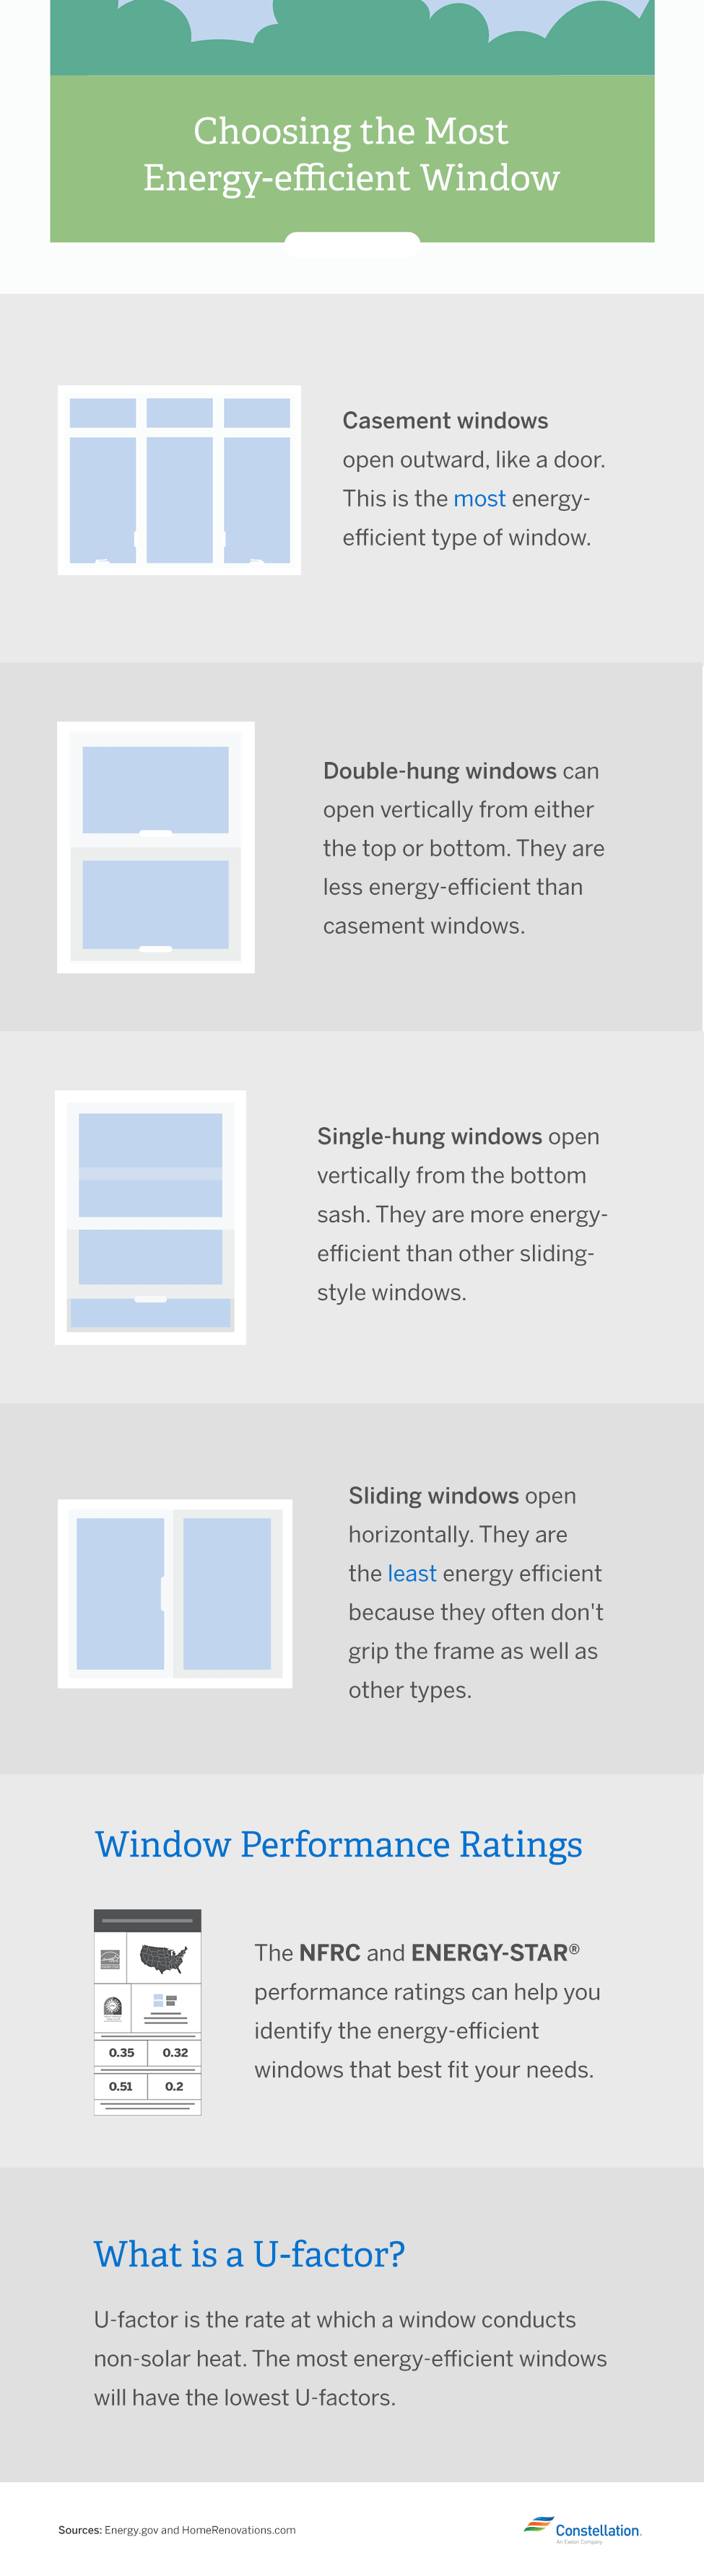 Energy efficiency series benefits of energy efficient windows for Energy efficient windows